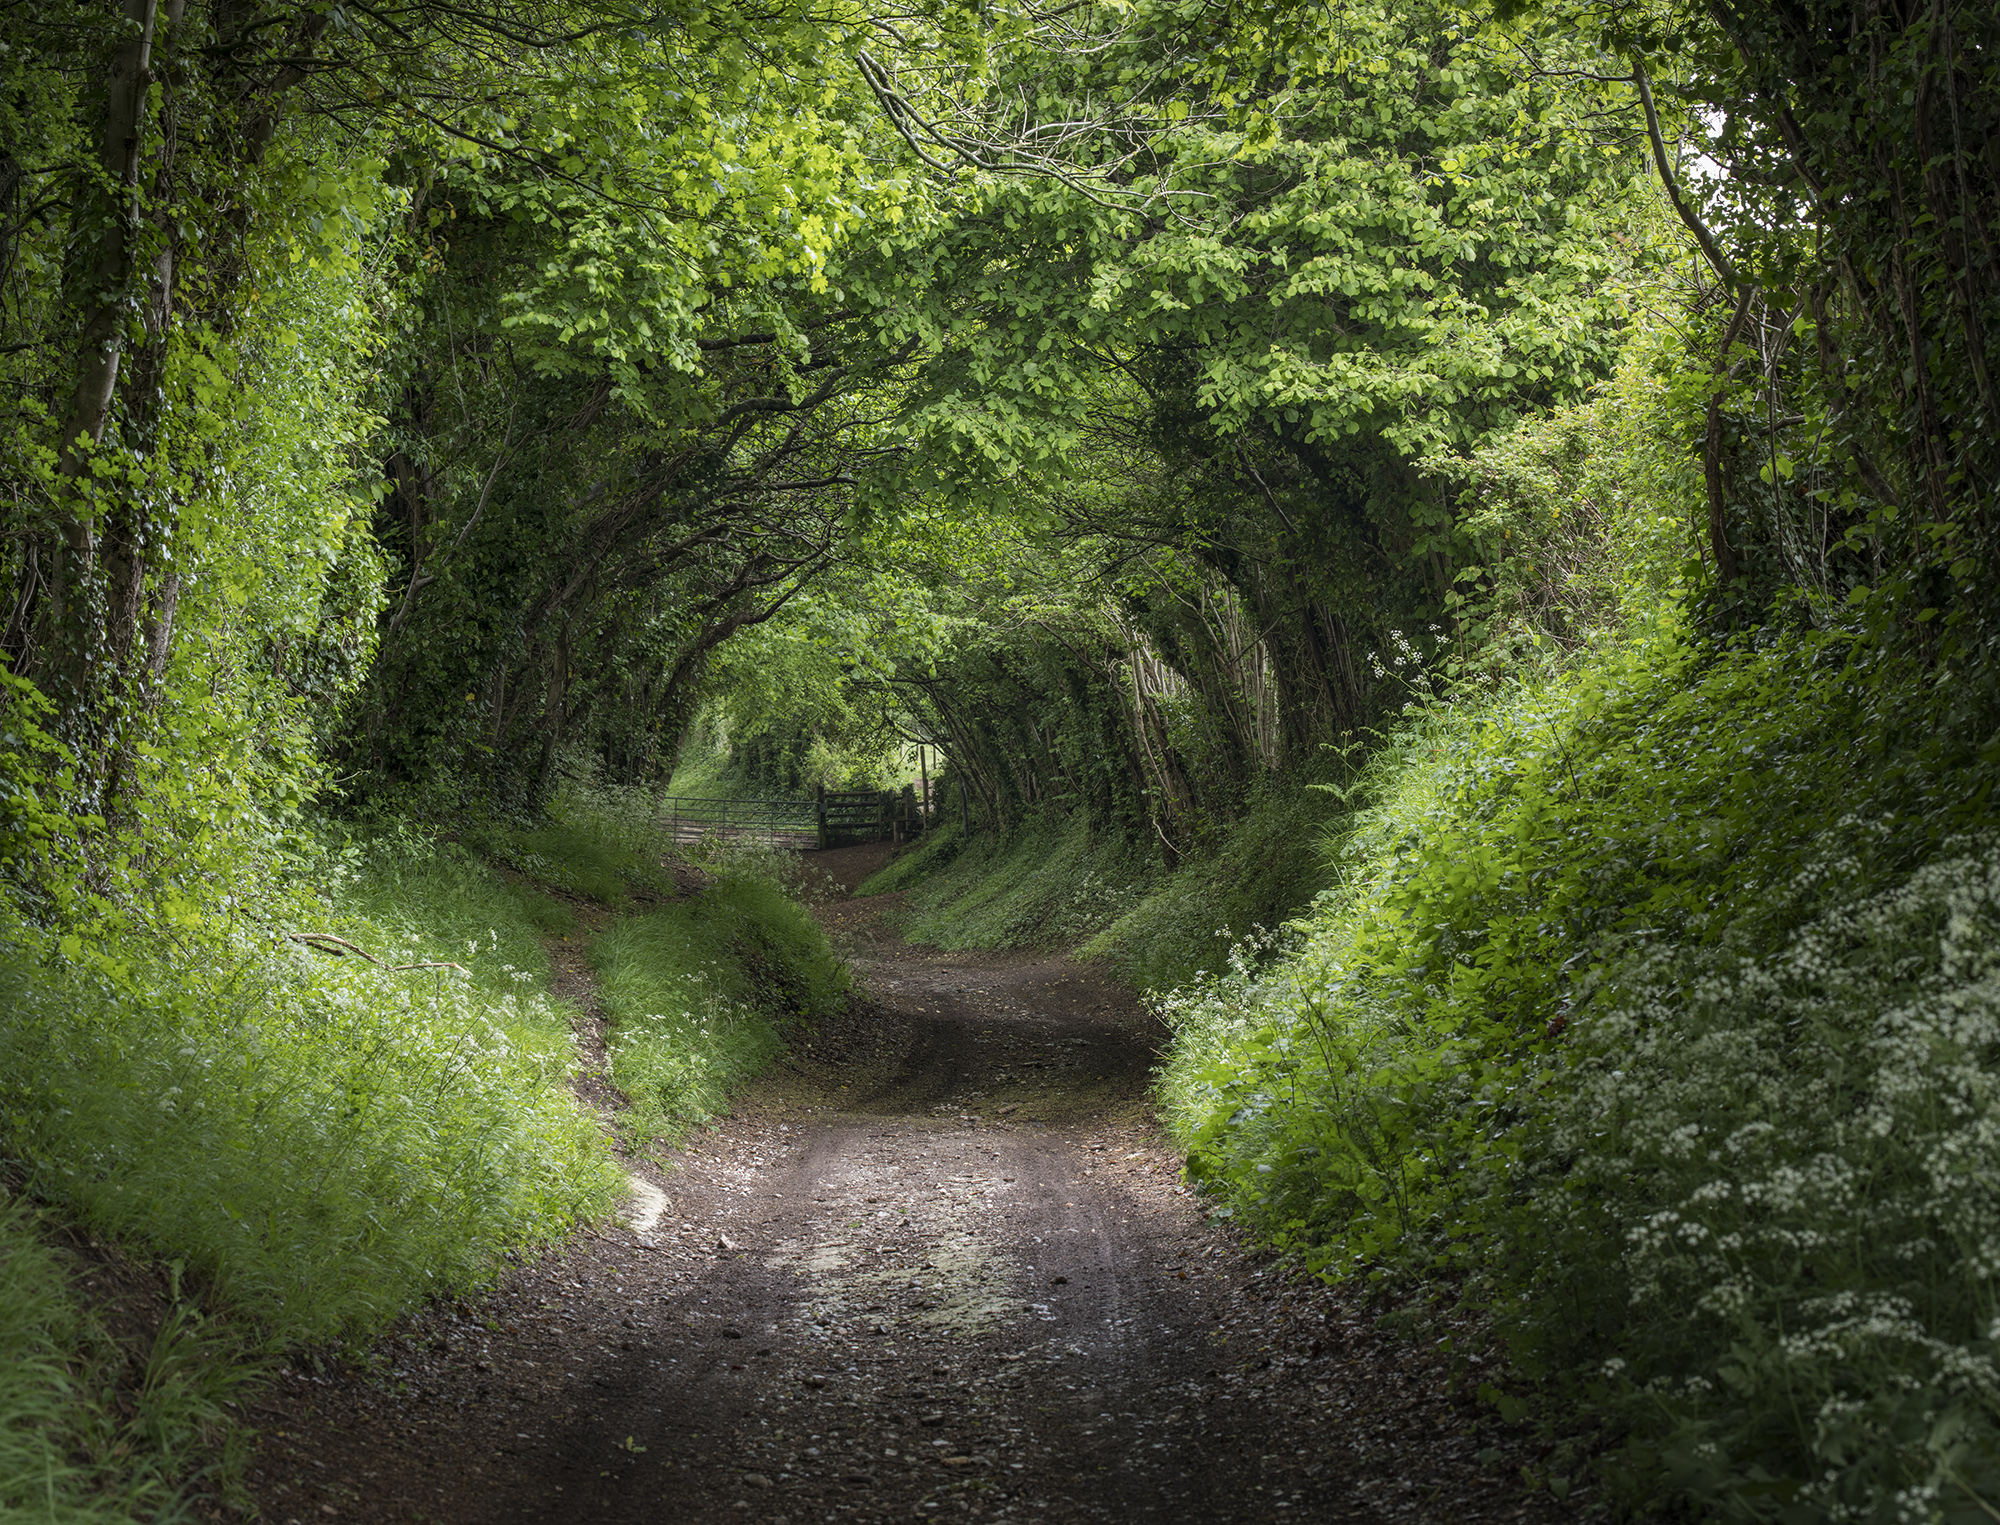 Tunnel of Green2.jpg